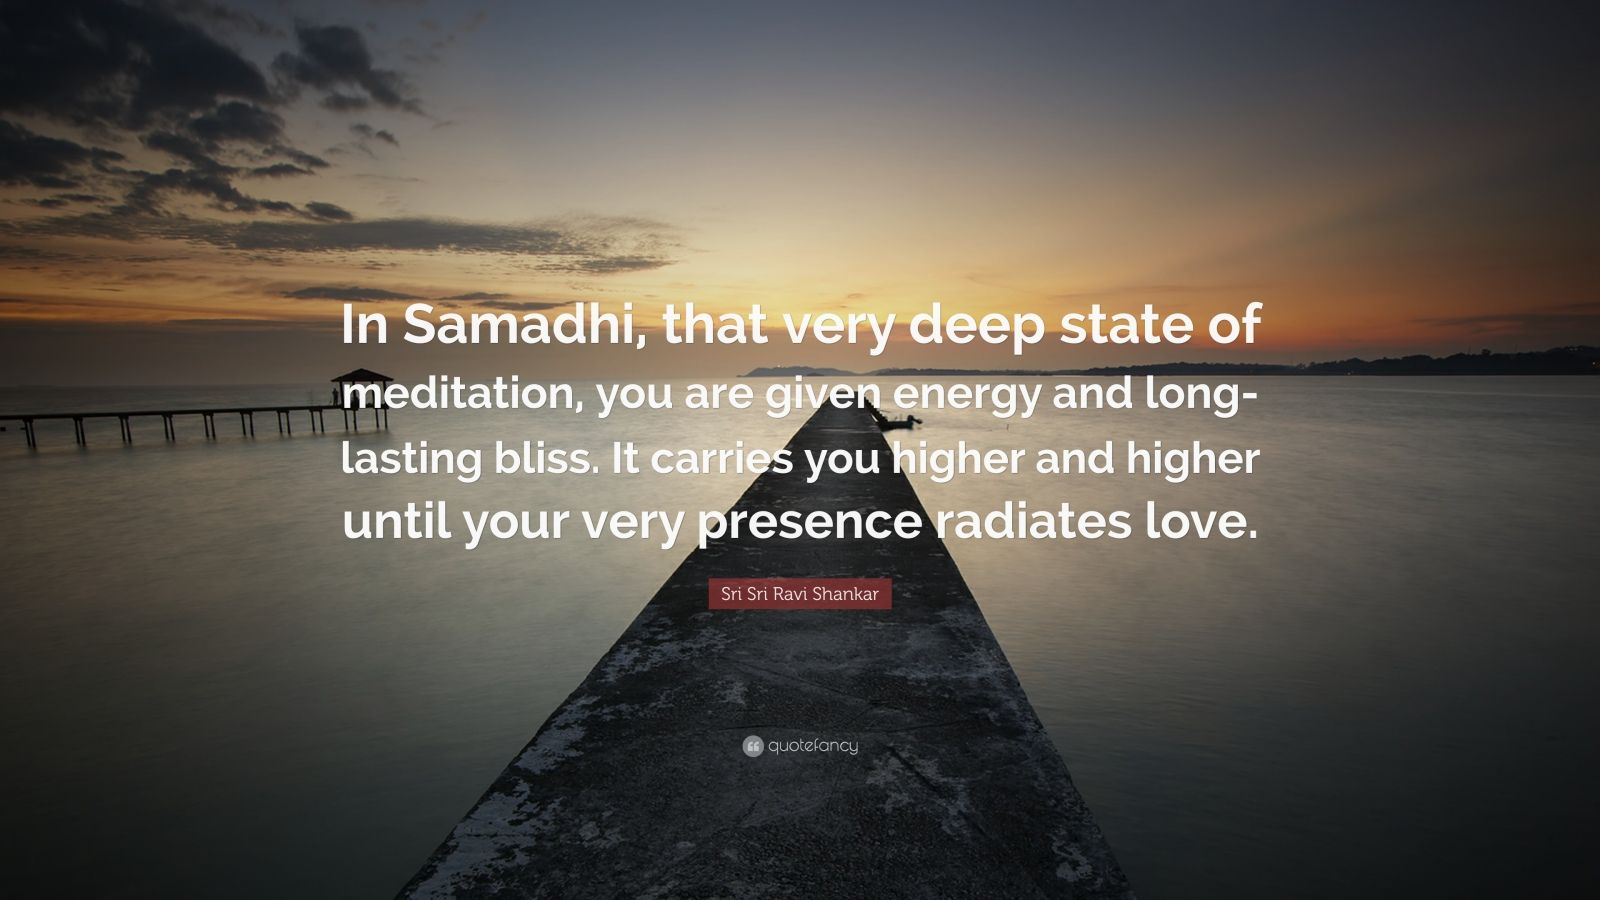 """Sri Sri Ravi Shankar Quote: """"In Samadhi, that very deep state of meditation, you are given energy and long-lasting bliss. It carries you higher and higher until your very presence radiates love."""""""